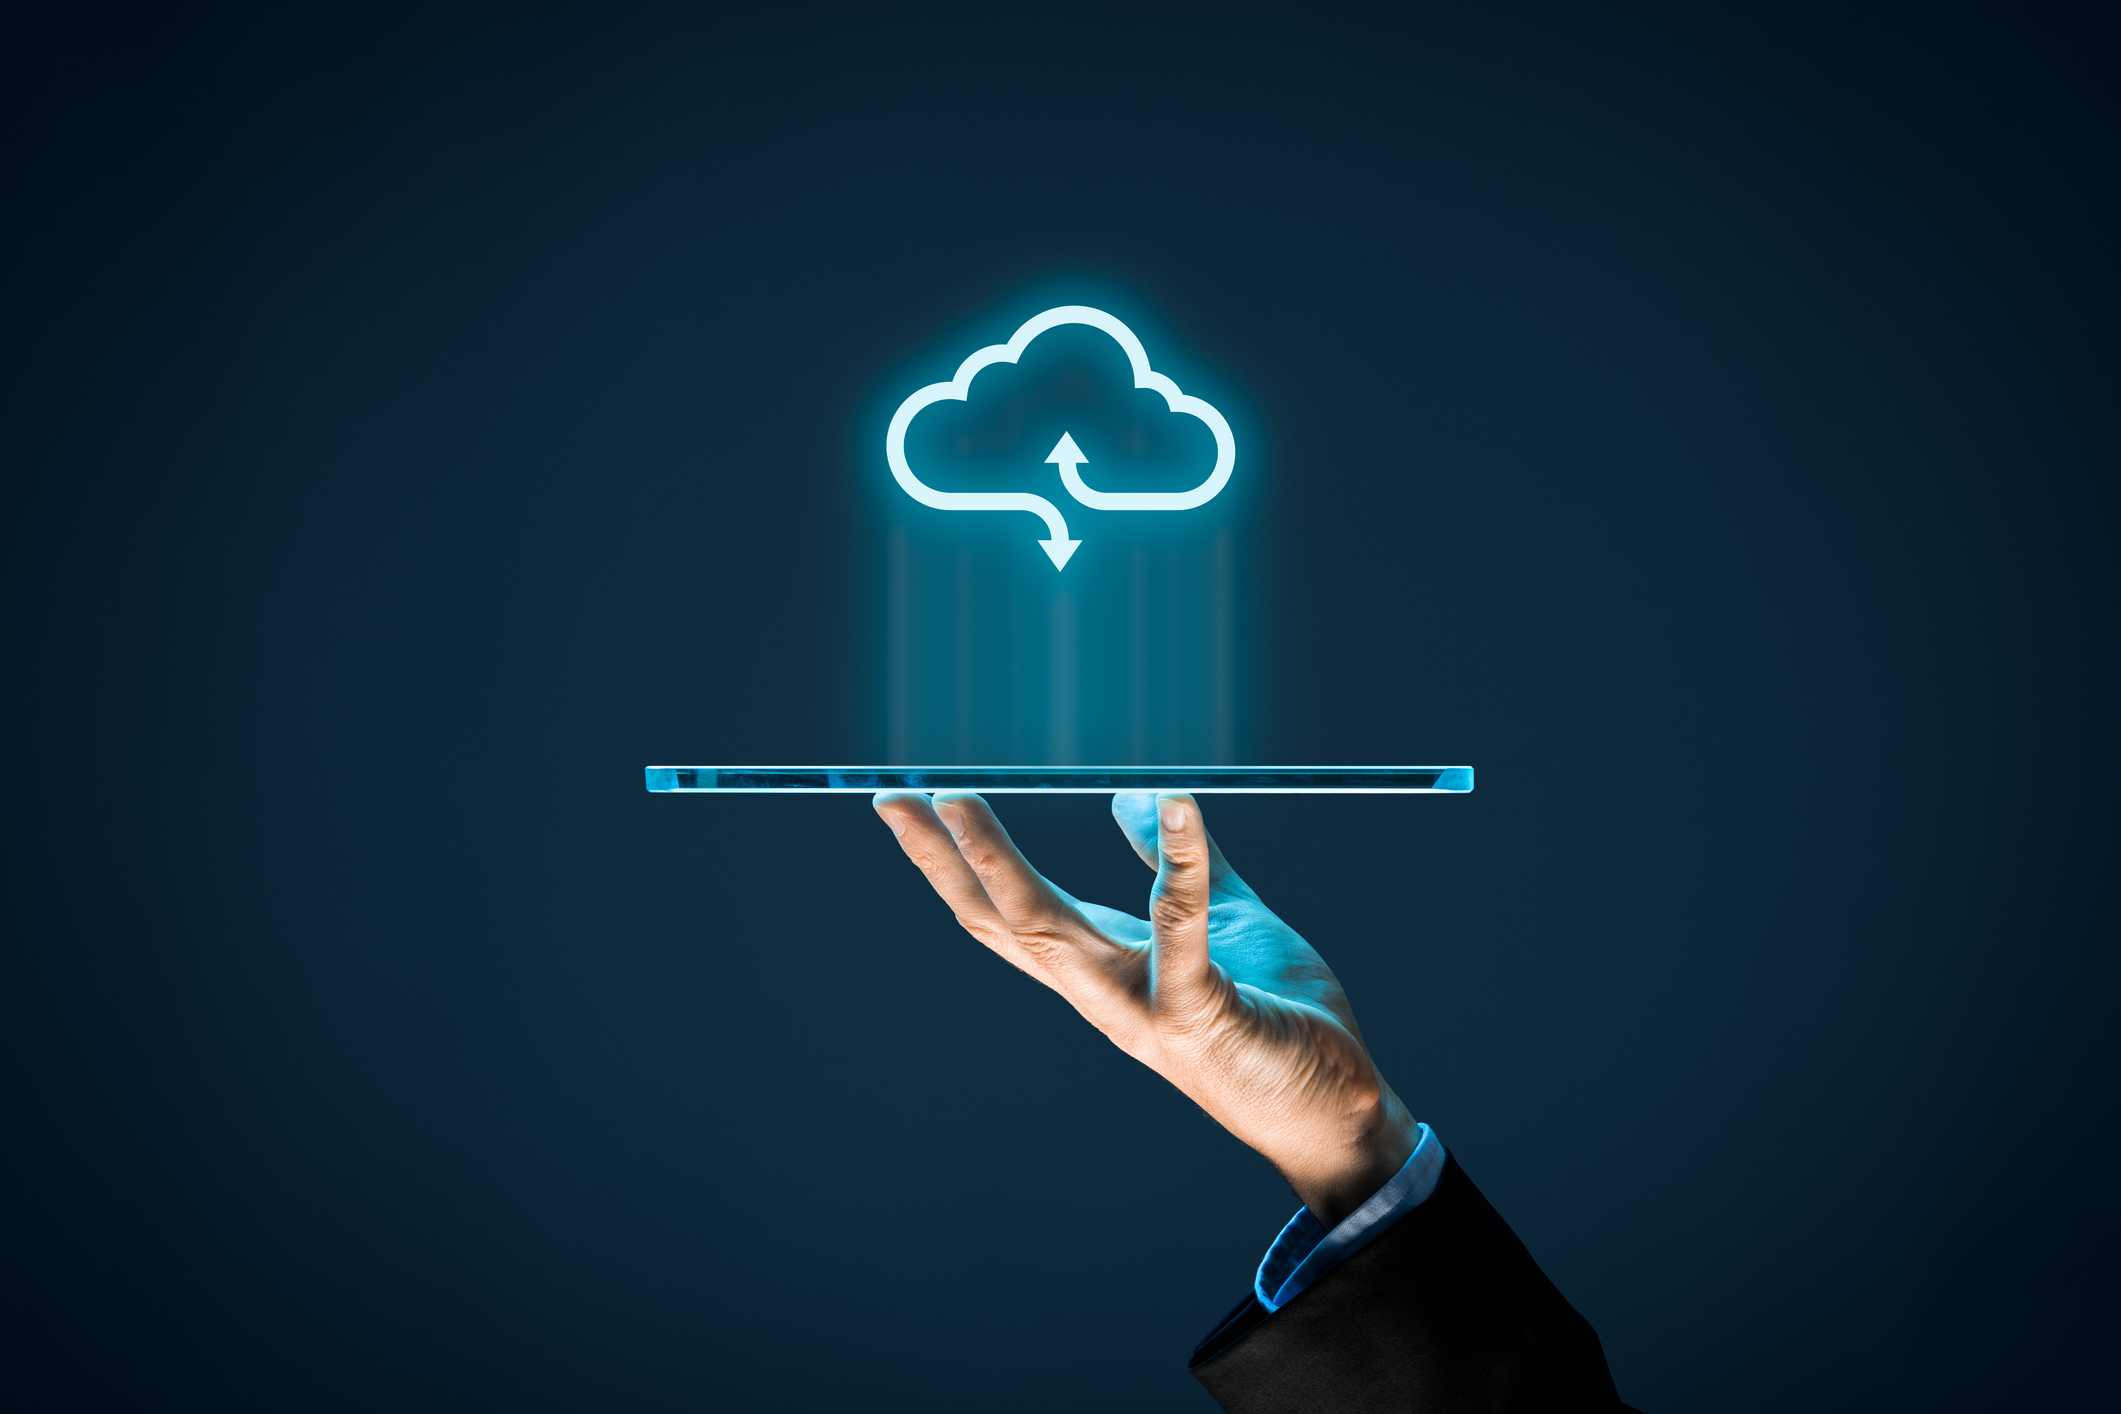 5 benefits of moving your voice services to the Cloud